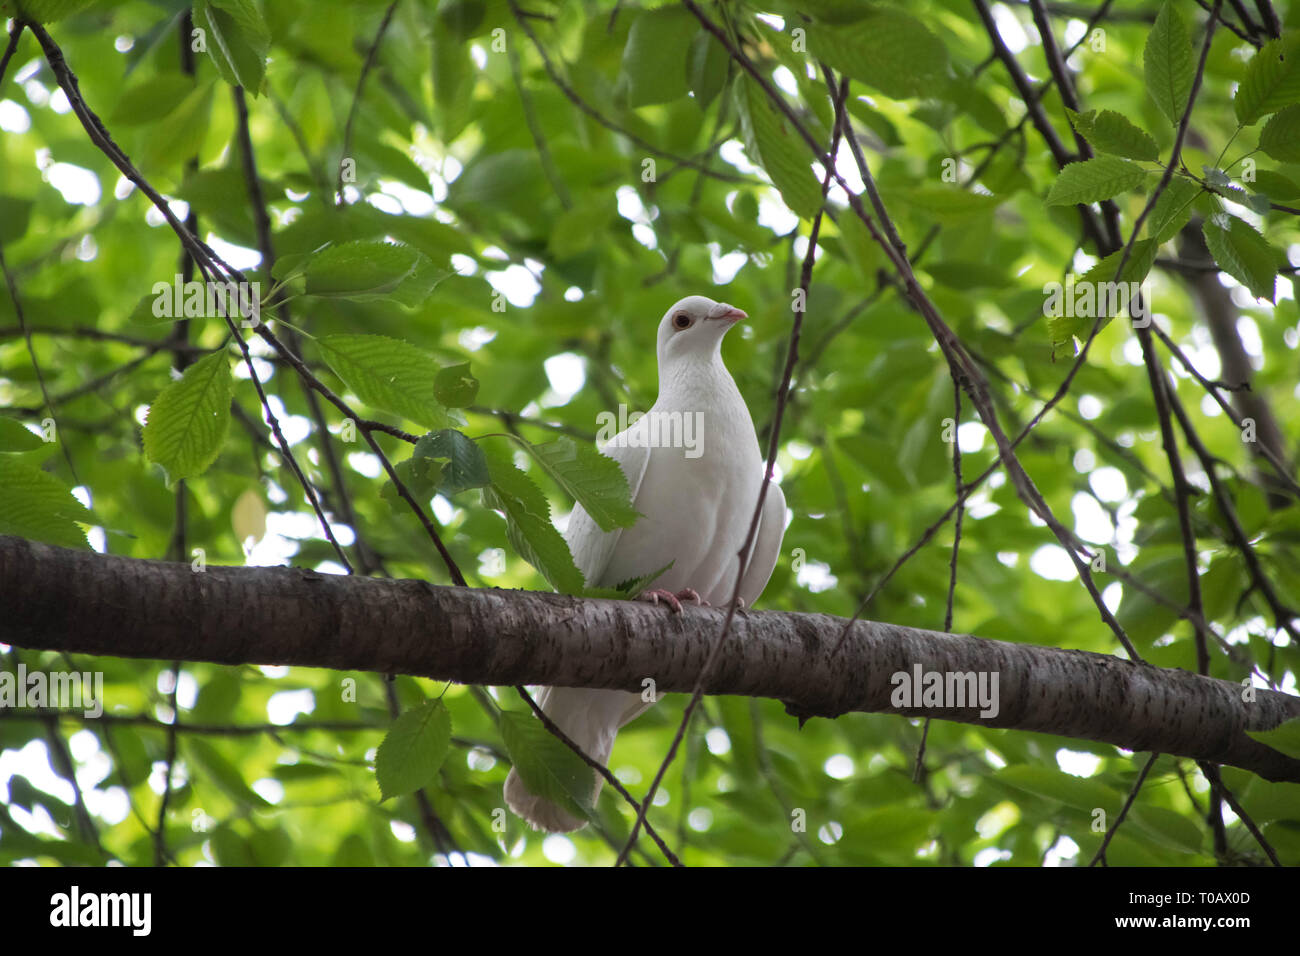 Happy smiling pigeon sitting in a green tree - Stock Image